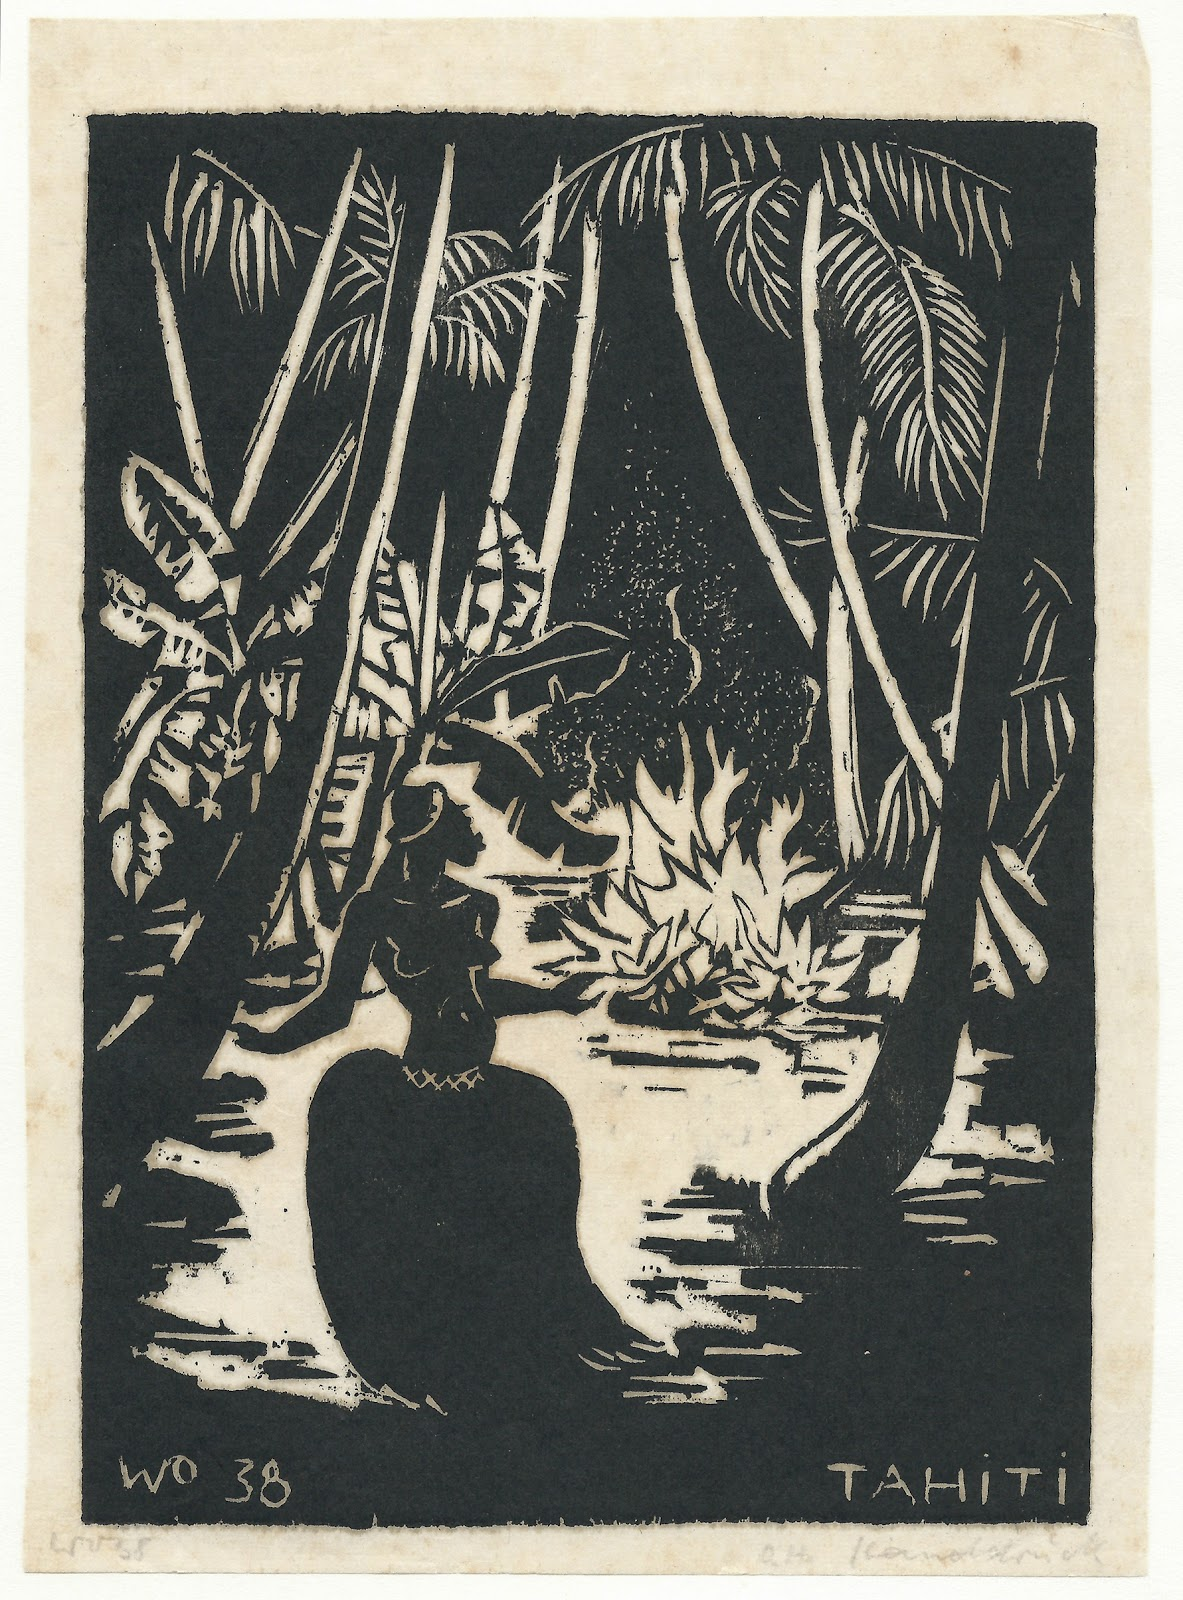 Dancer at the fire, hand print, 1938, family-owned